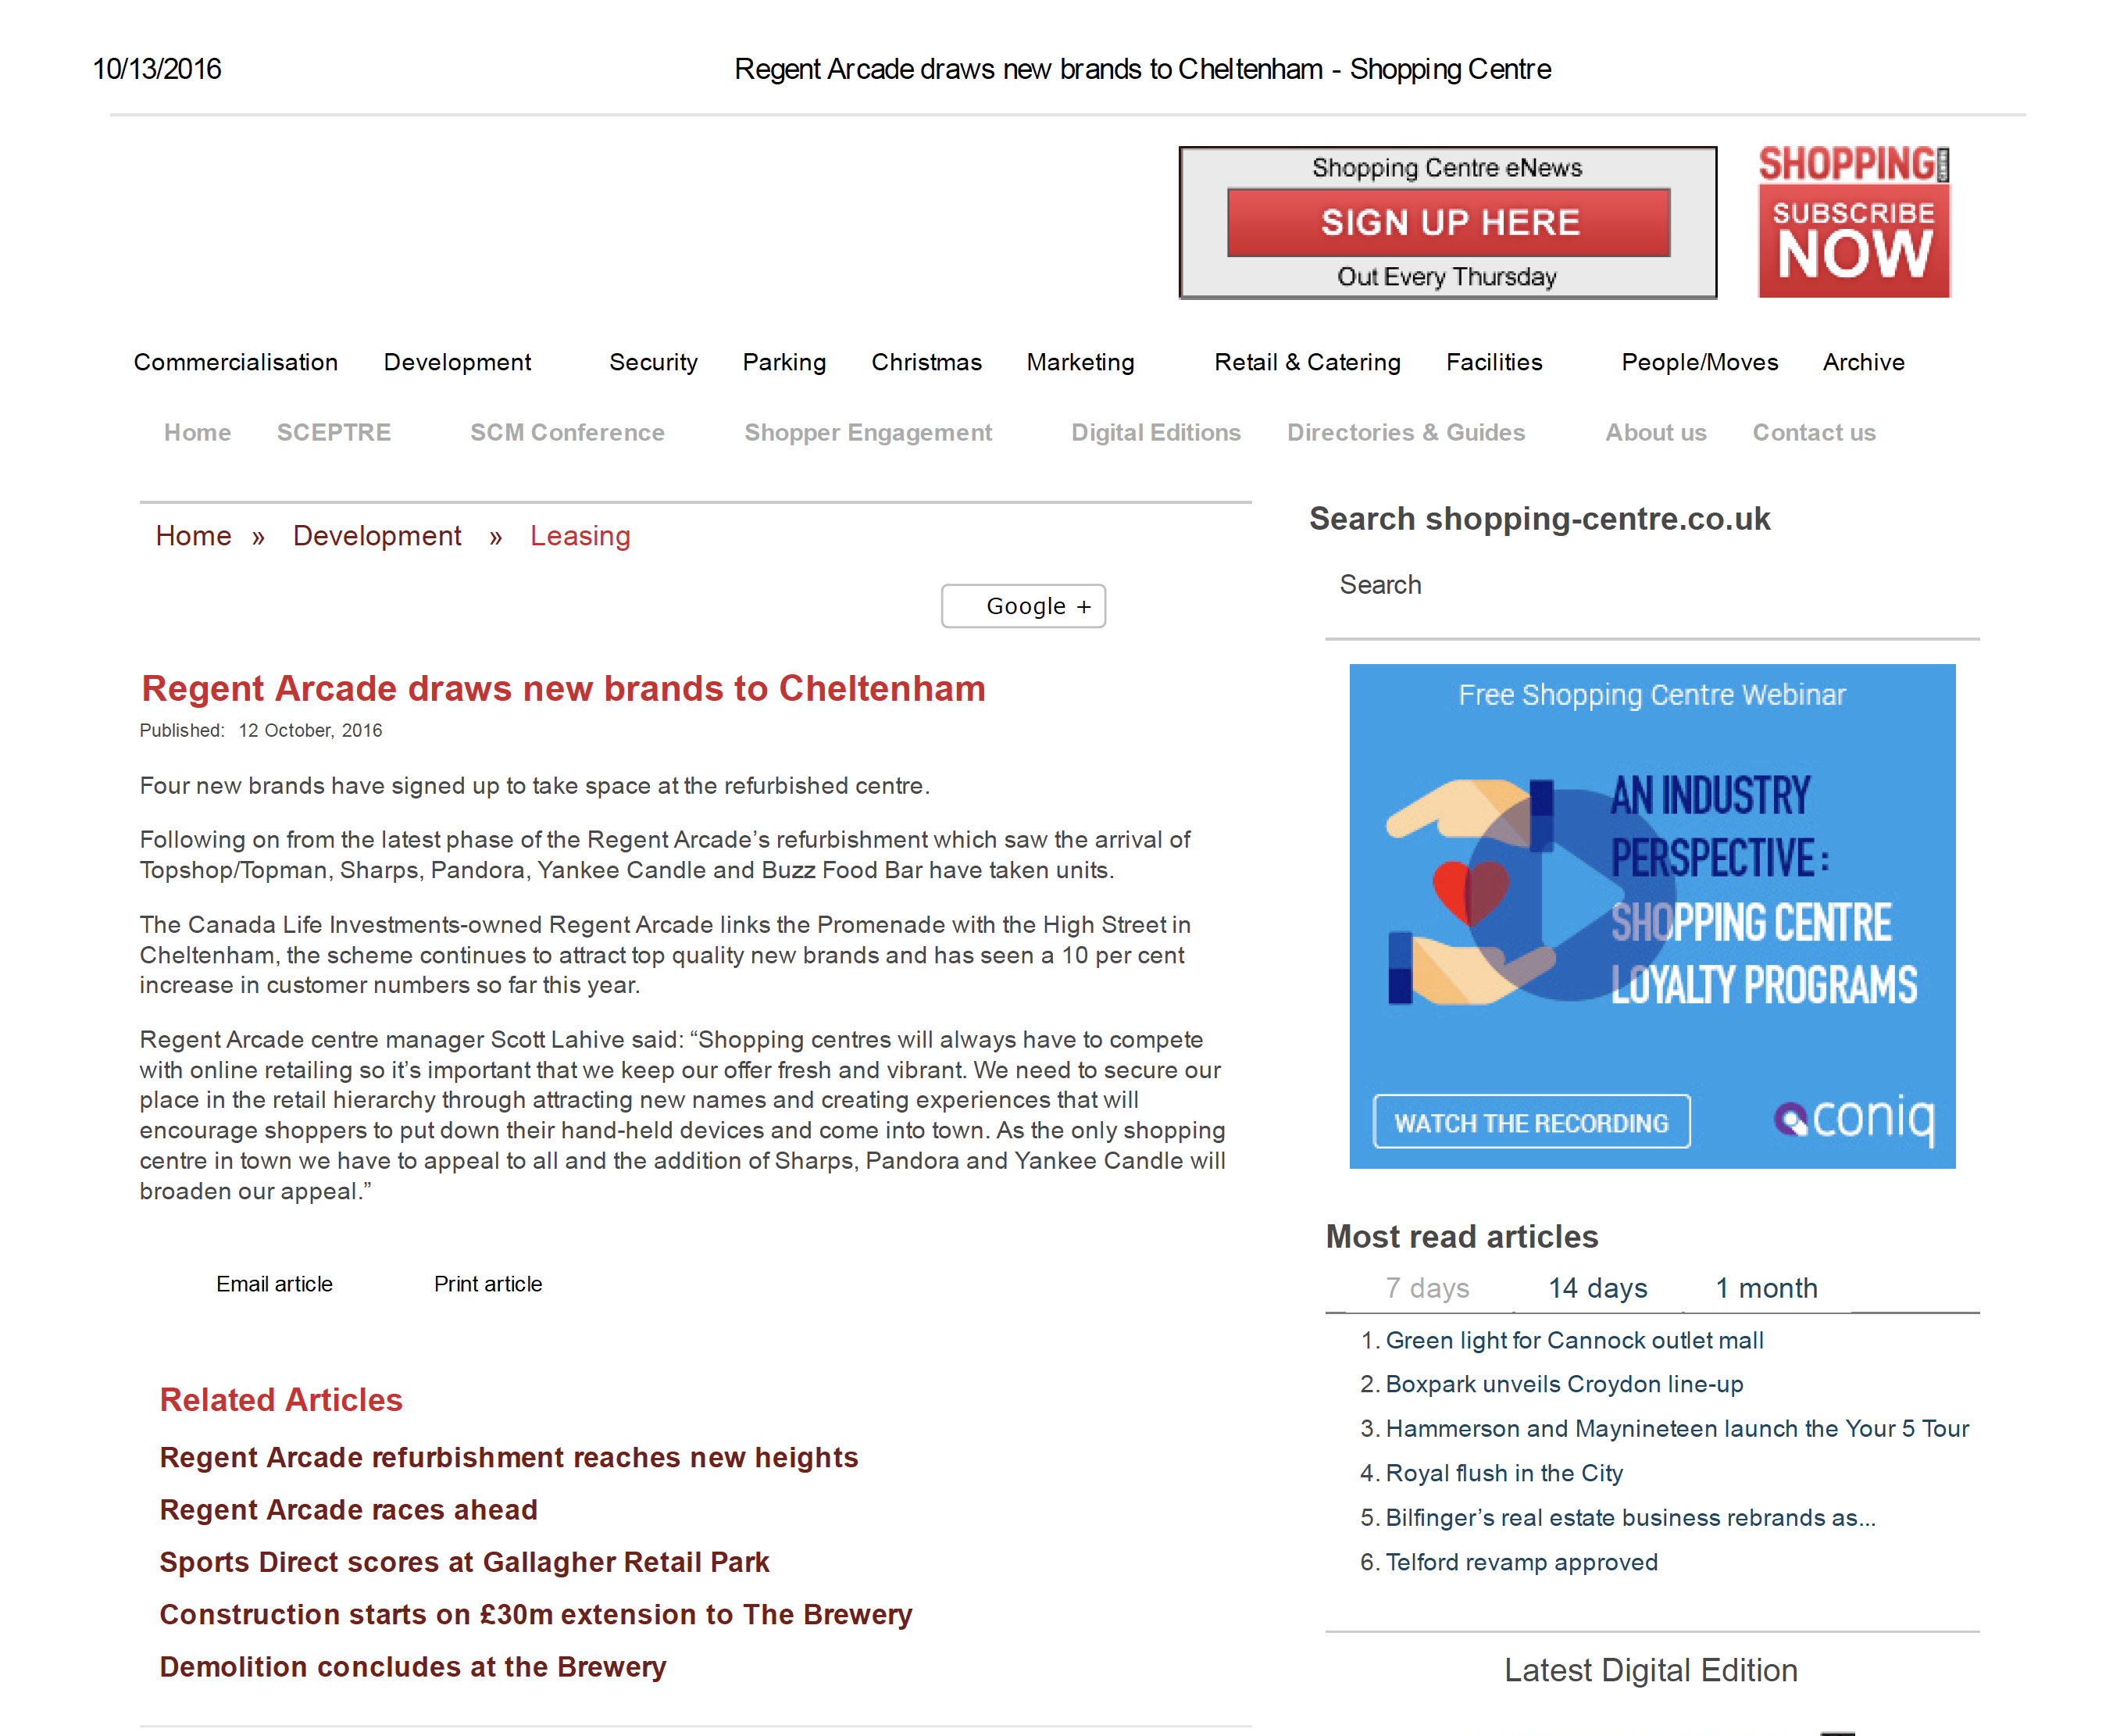 screen-shot-2016-10-14-at-13-48-56